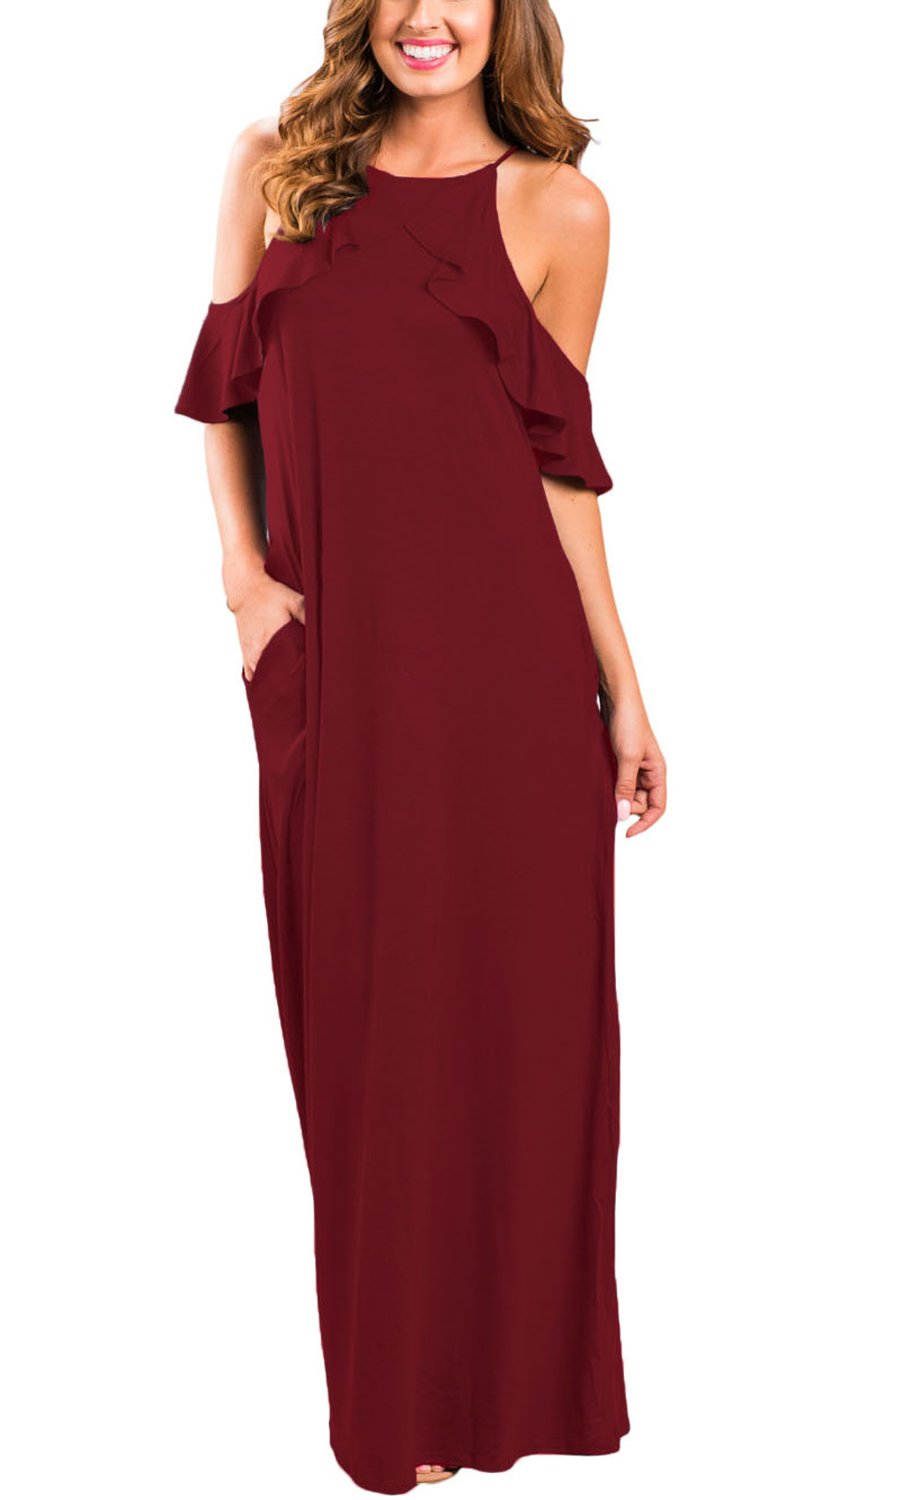 I2CRAZY Womens Summer Short Sleeve Crew Neck Pleated Loose Swing Casual Dress(Size-HXL,WineRed)